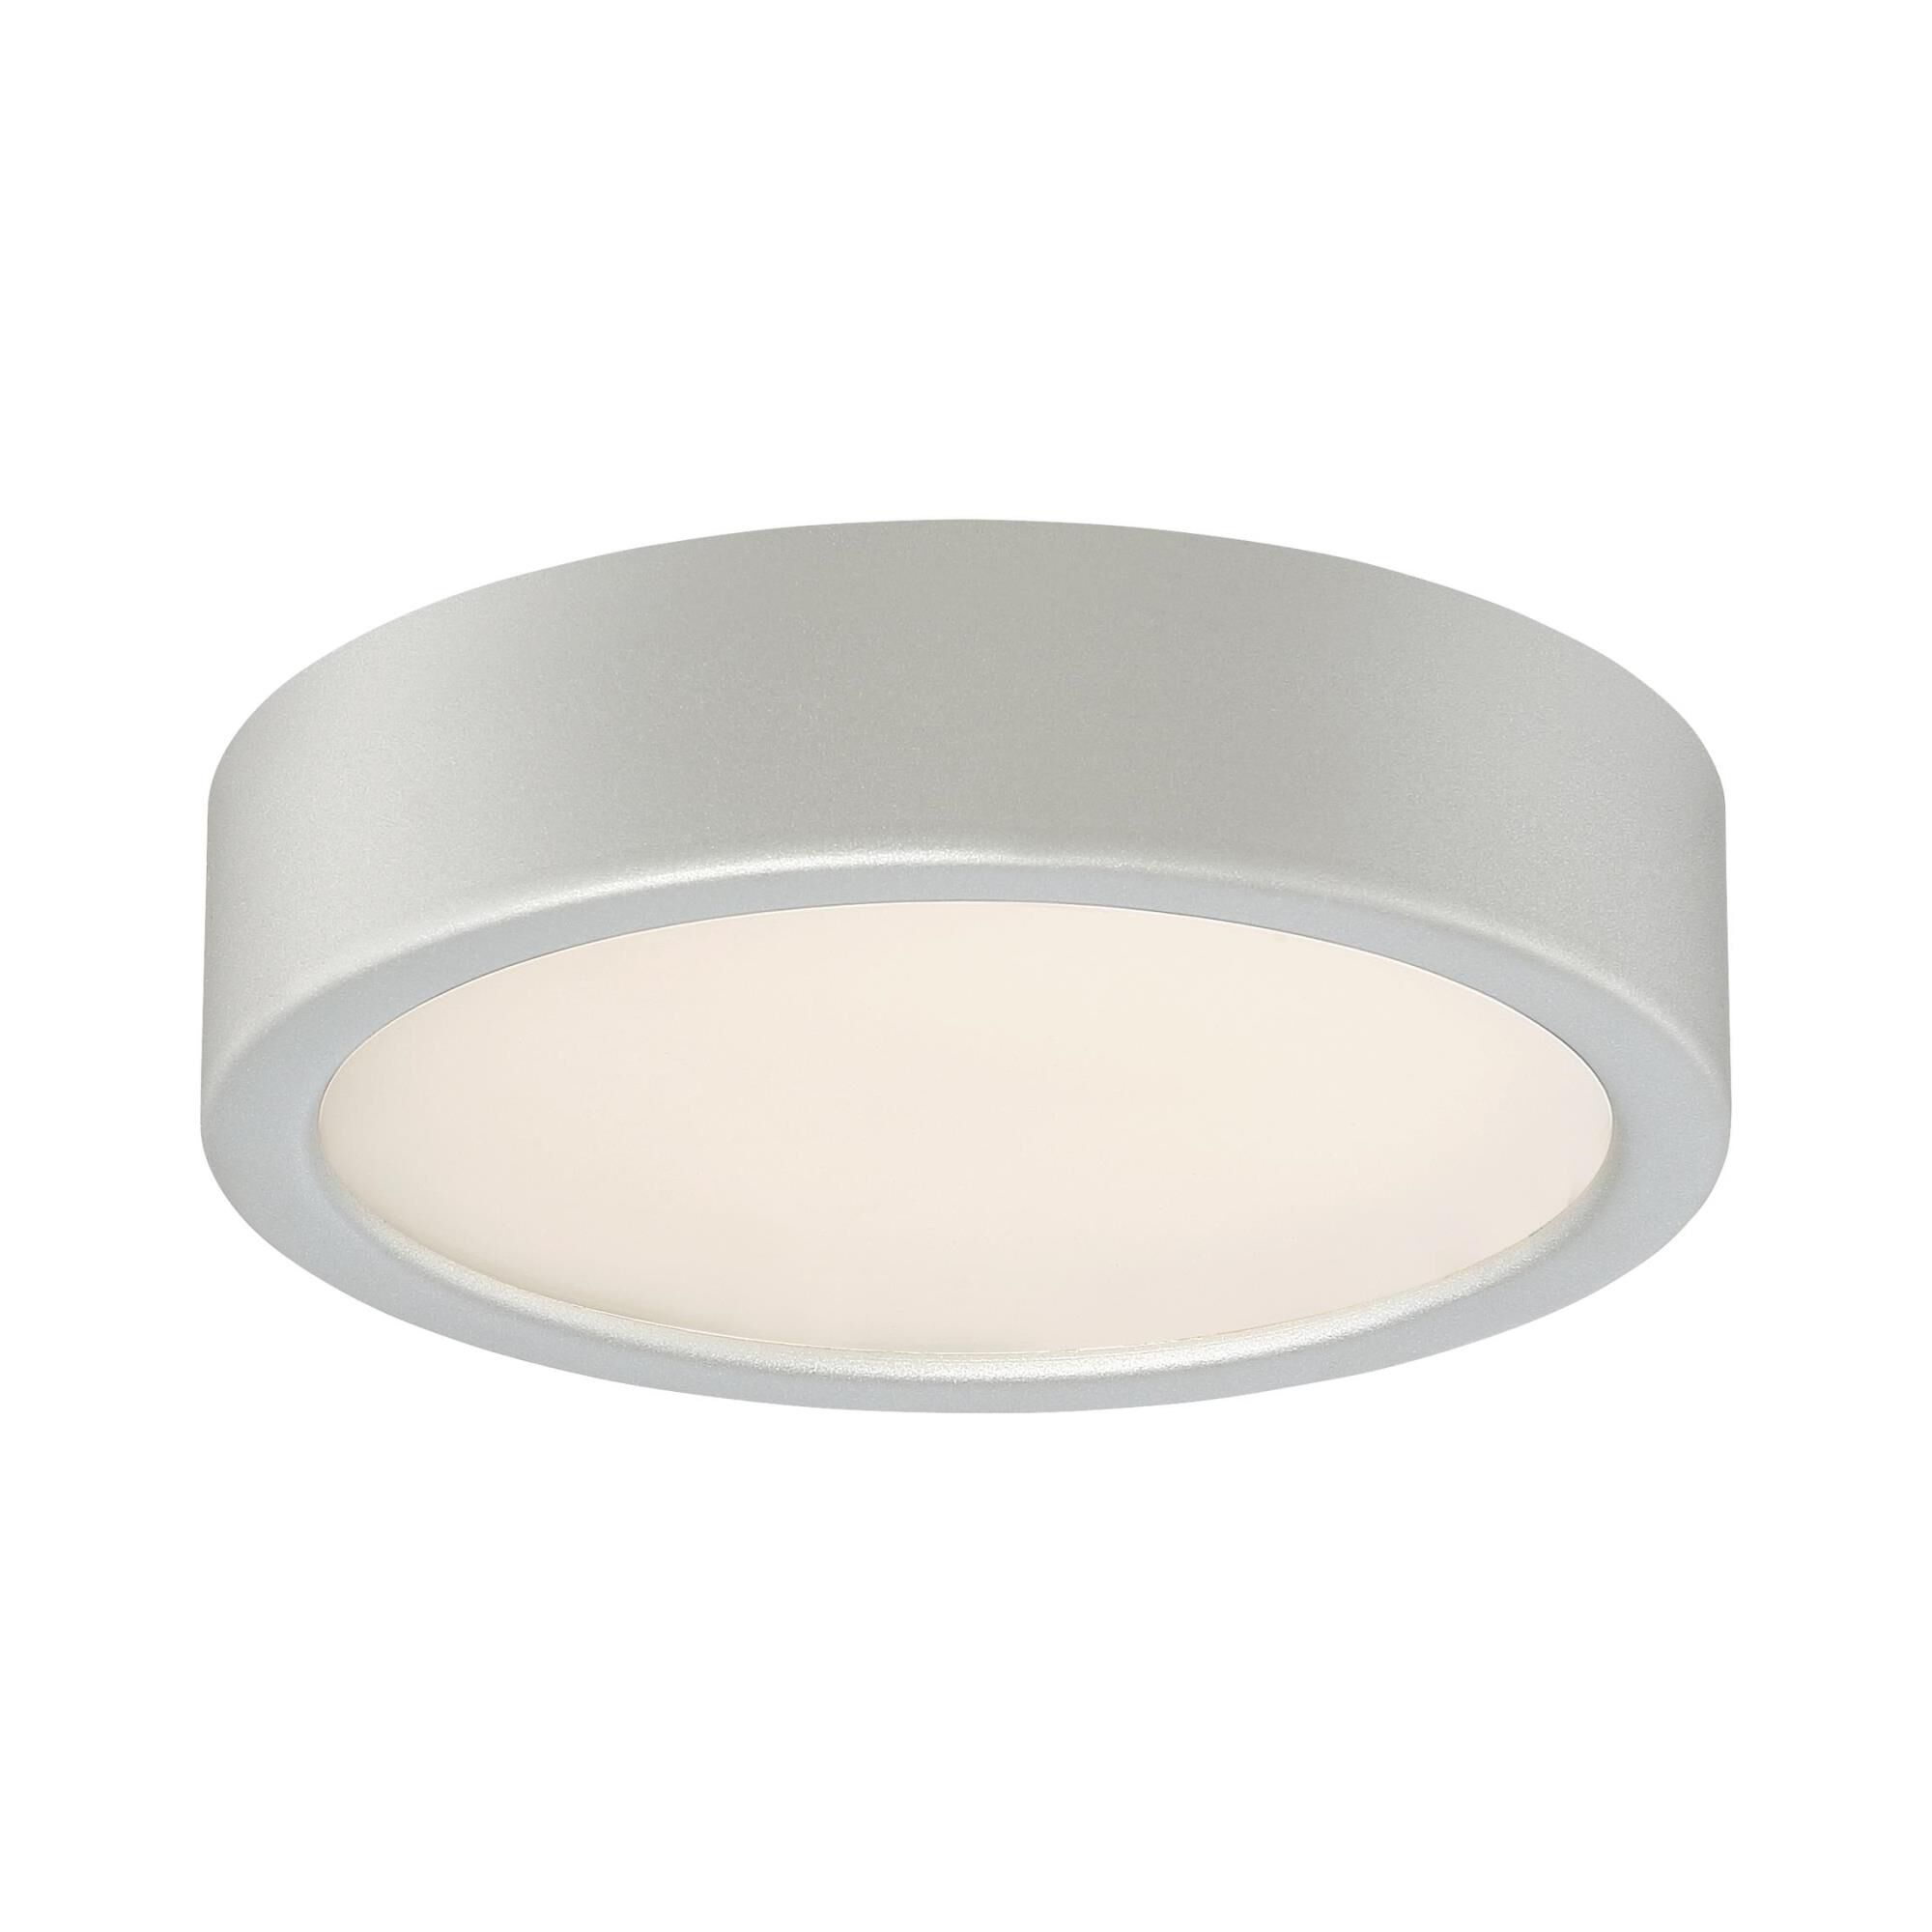 Kovacs 6 Inch 1 Light Led Flush Mount - P840-609-l - Transitional